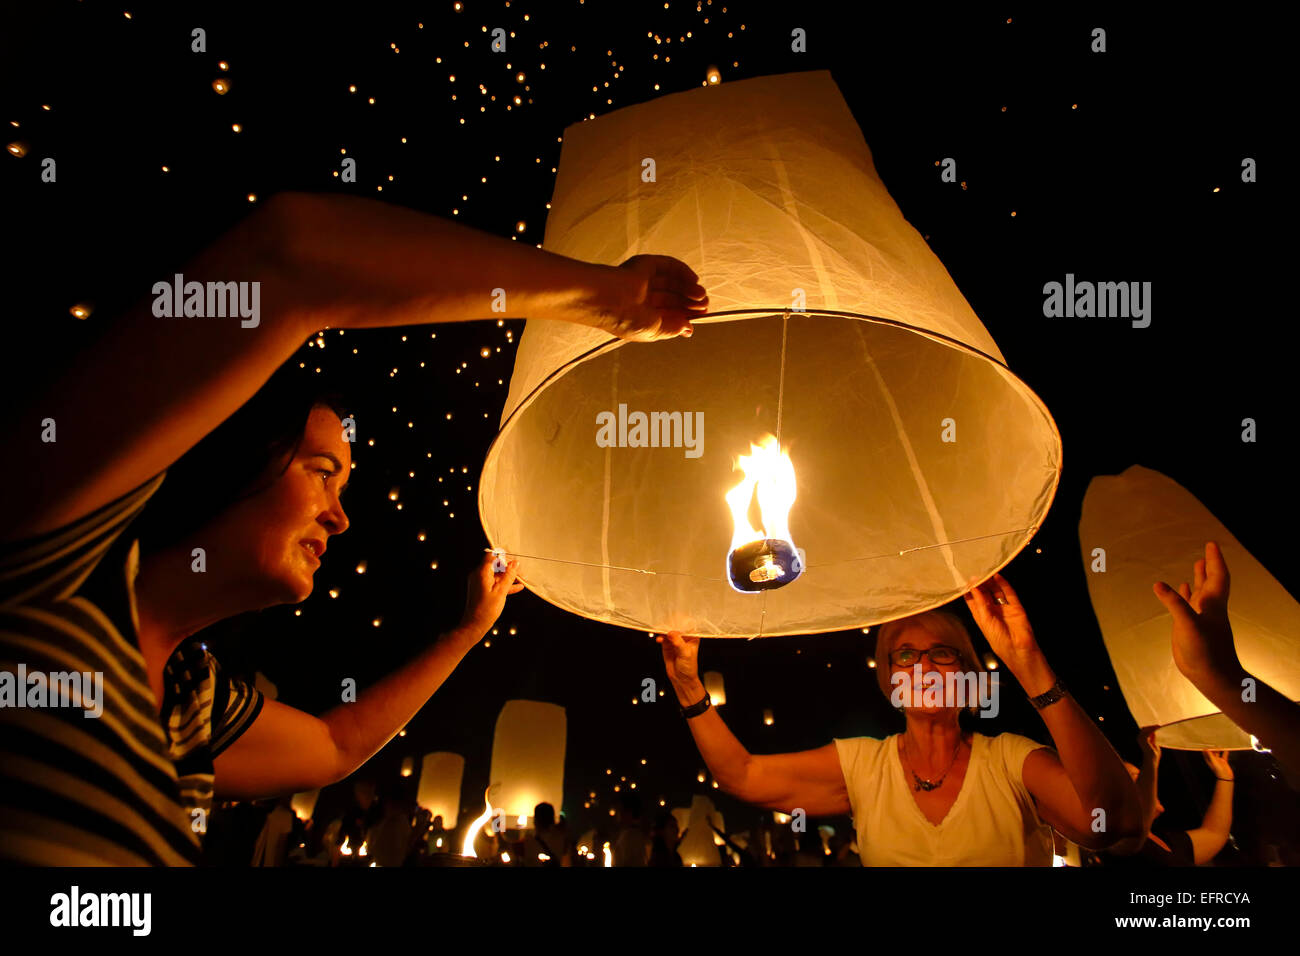 People releasing lanterns, Yeepeng Lanna International Lantern Festival, Lanna Dhutanka, Chiang Mai, Thailand Stock Photo